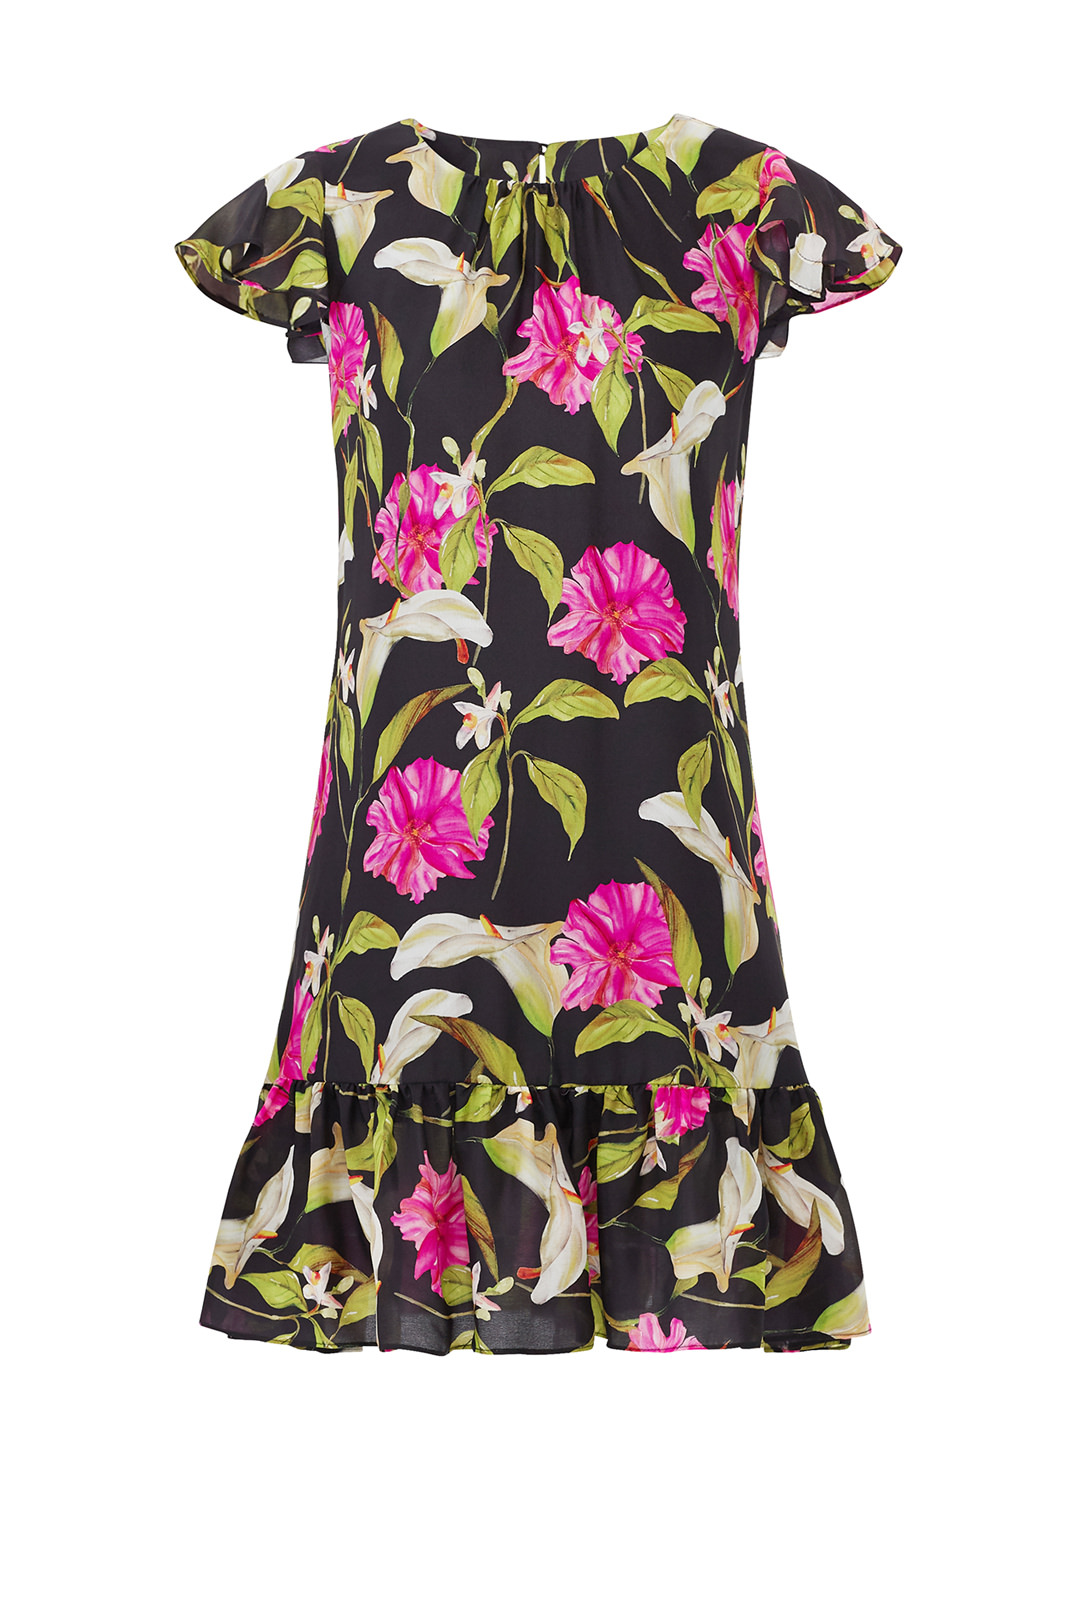 9d7623043bd7 Milly Black Floral Tropical Print Chiffon P Petite Shift Dress Silk $425-  #886